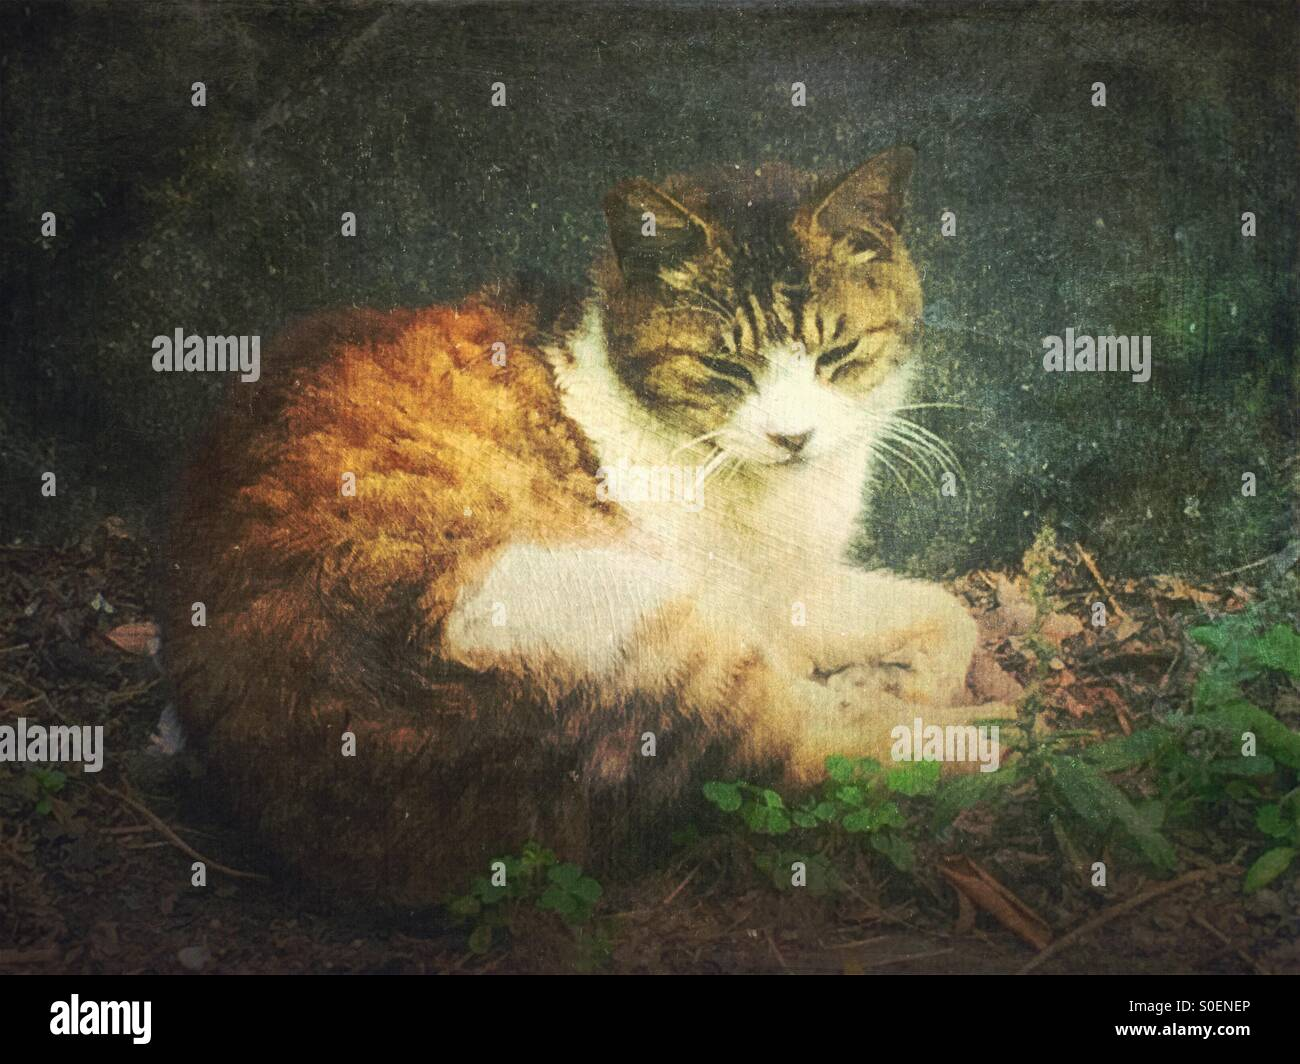 White and brown alley cat sitting in front of a rock and looking sleepy. Vintage painterly texture overlay. Stock Photo